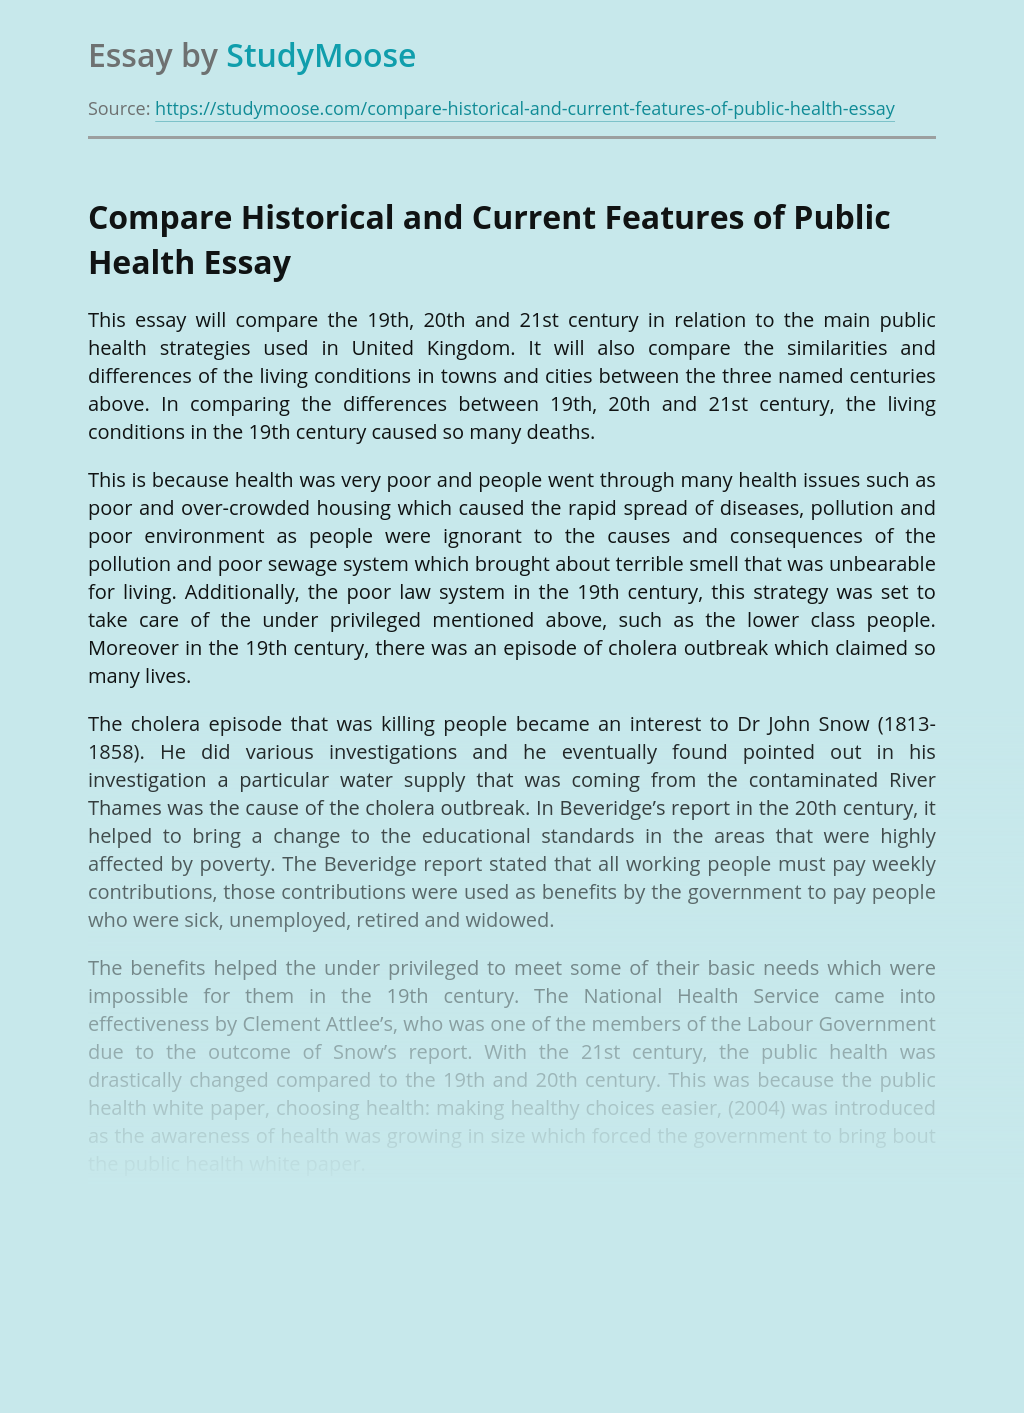 Compare Historical and Current Features of Public Health